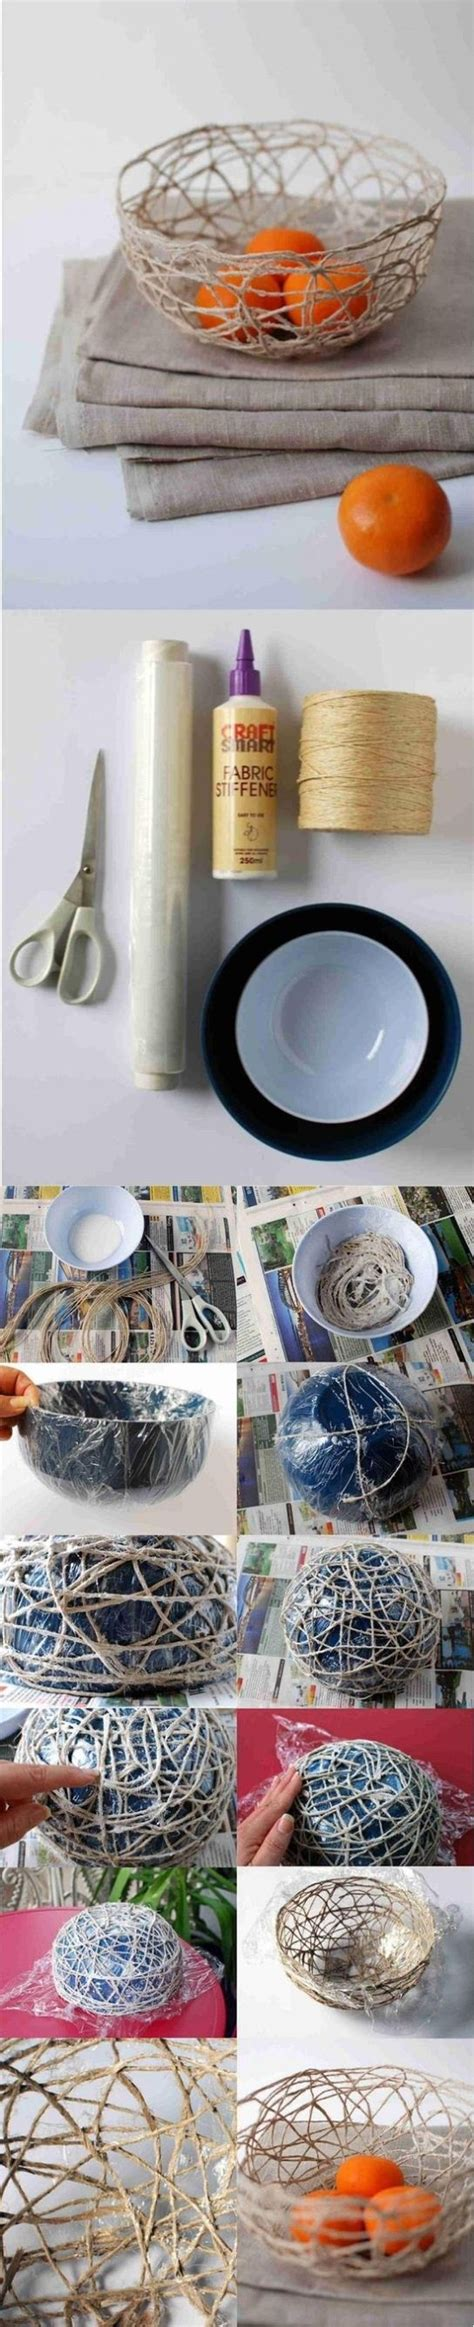 useful craft projects 9 unique and useful do it yourself projects for home decor